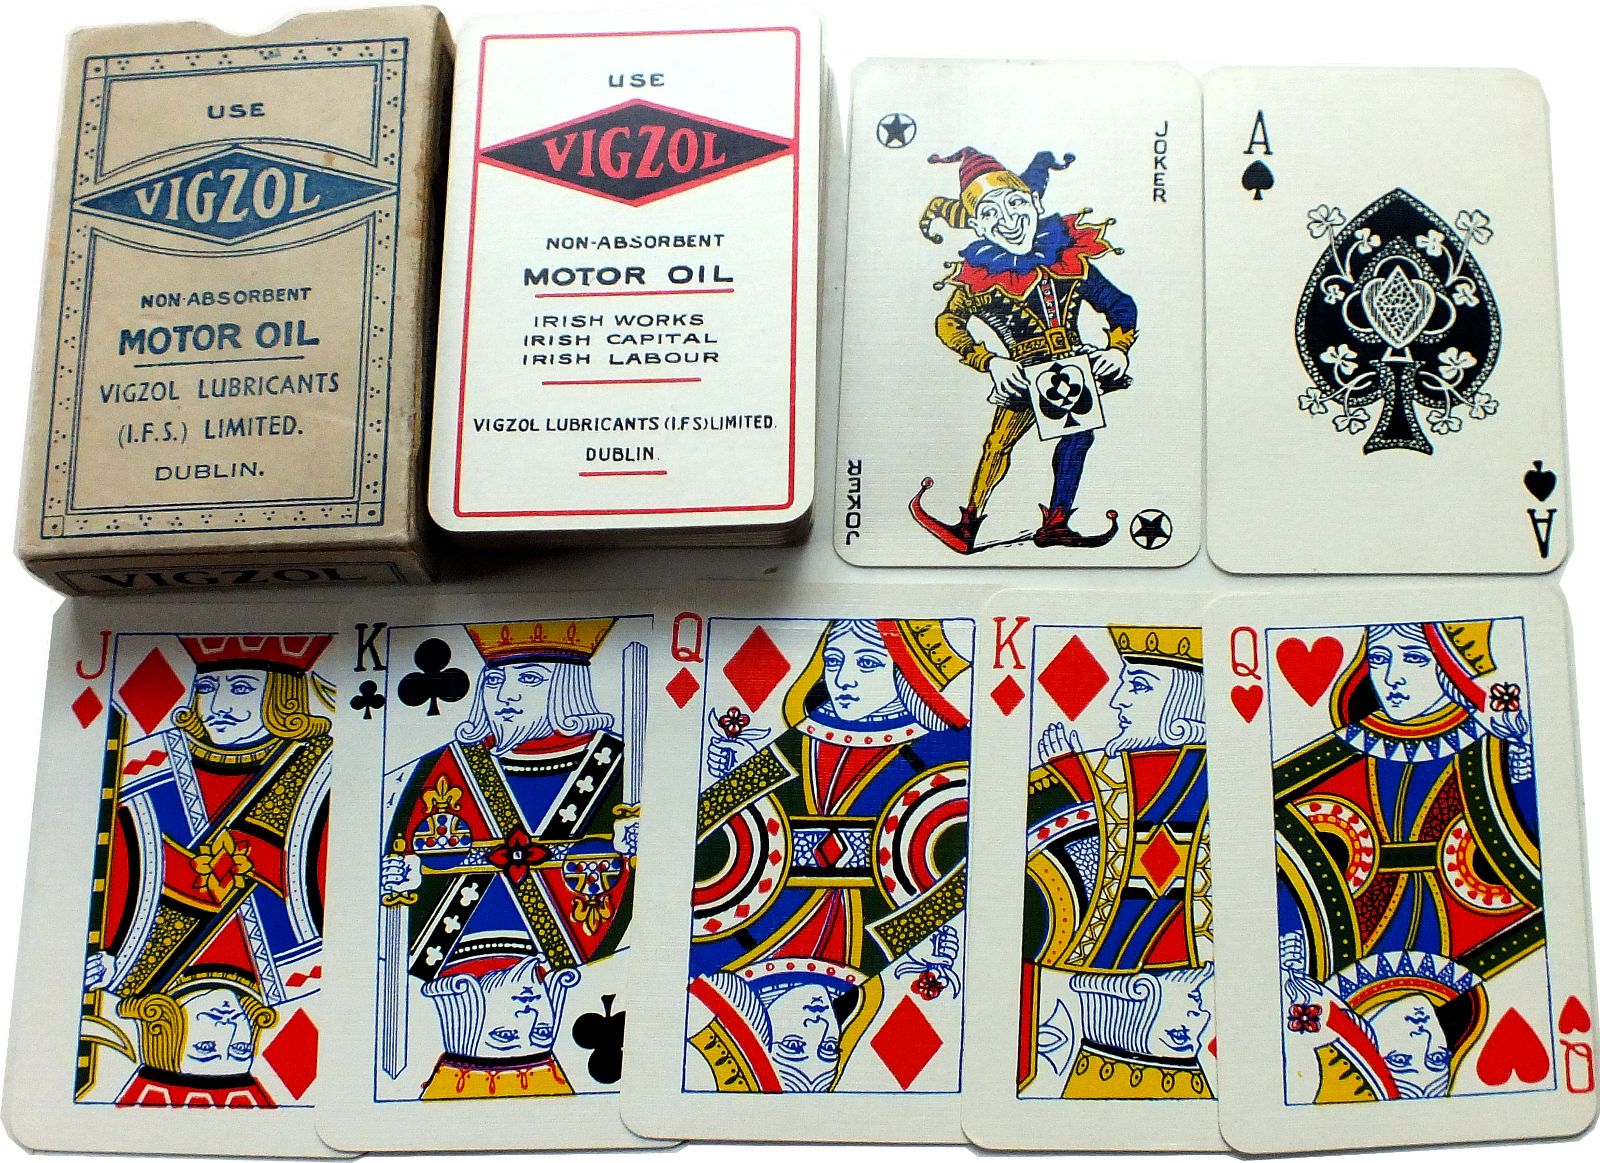 Vigzol Motor Oil advertising playing cards, c.1920s